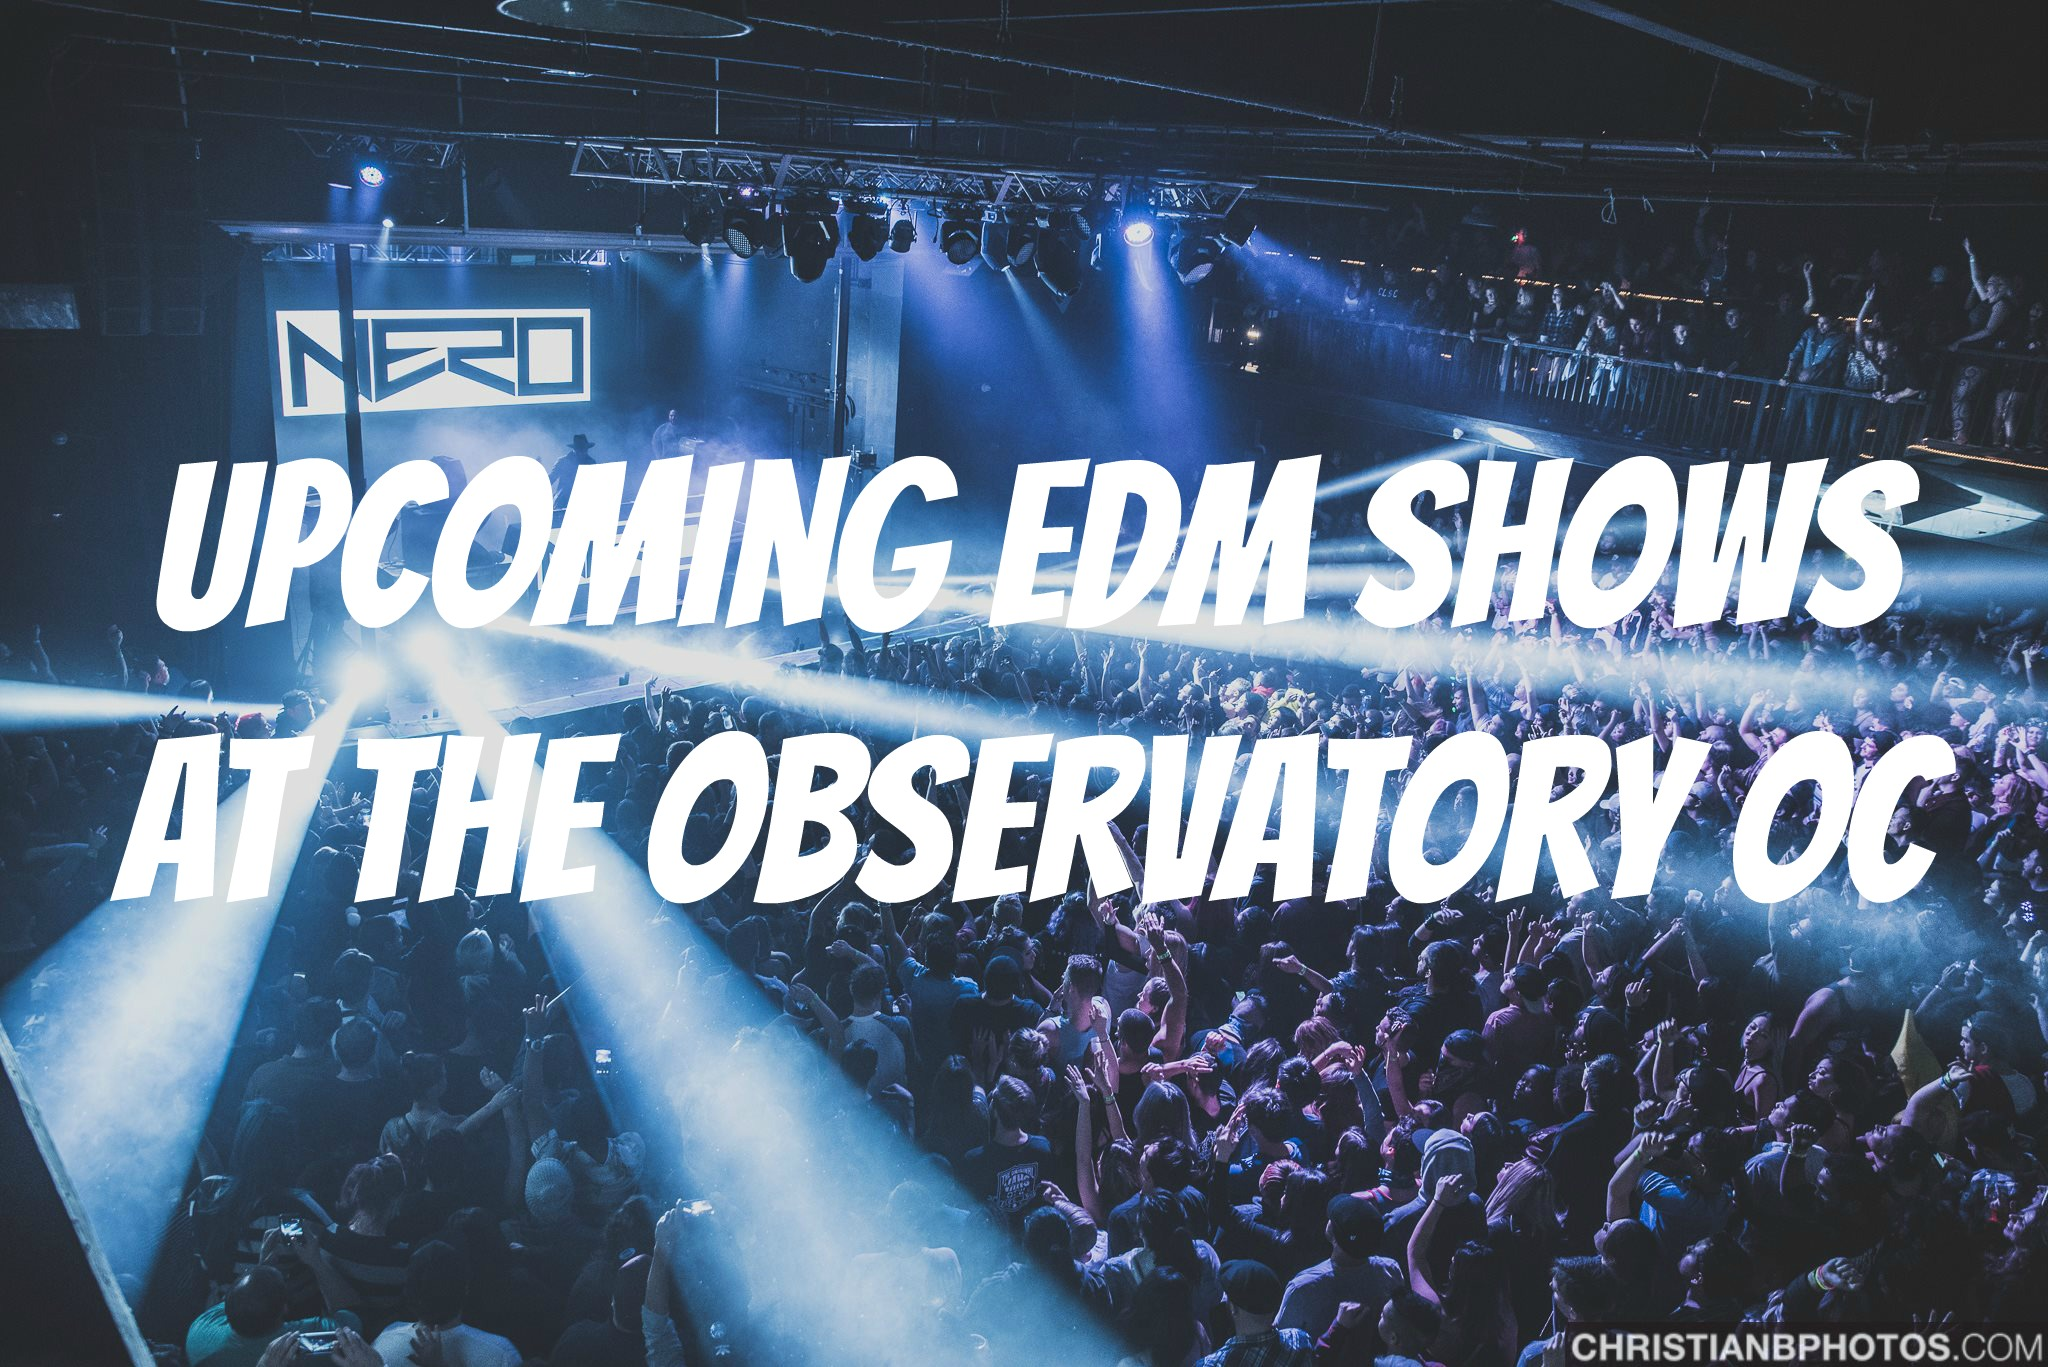 Upcoming Edm Shows At The Observatory Oc Events Calendar Gde